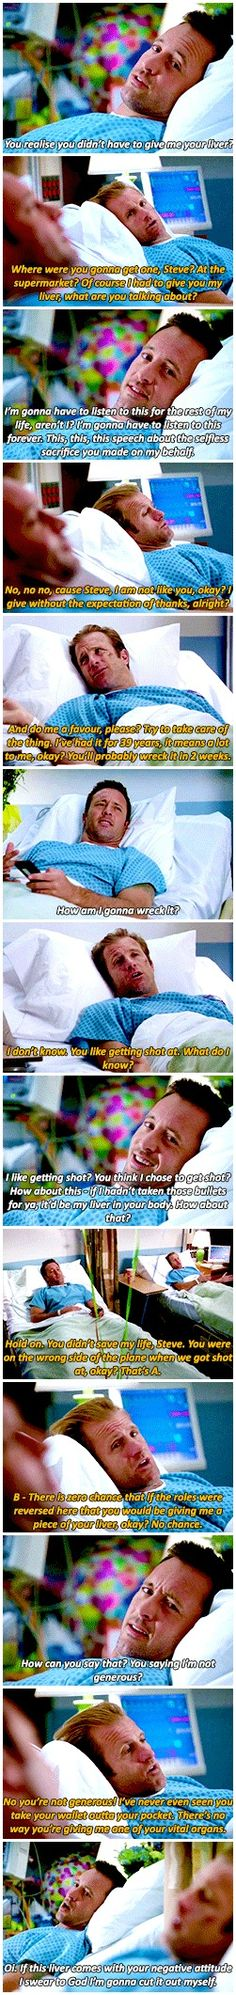 I like the way Steve said he is going to pull the liver out himself